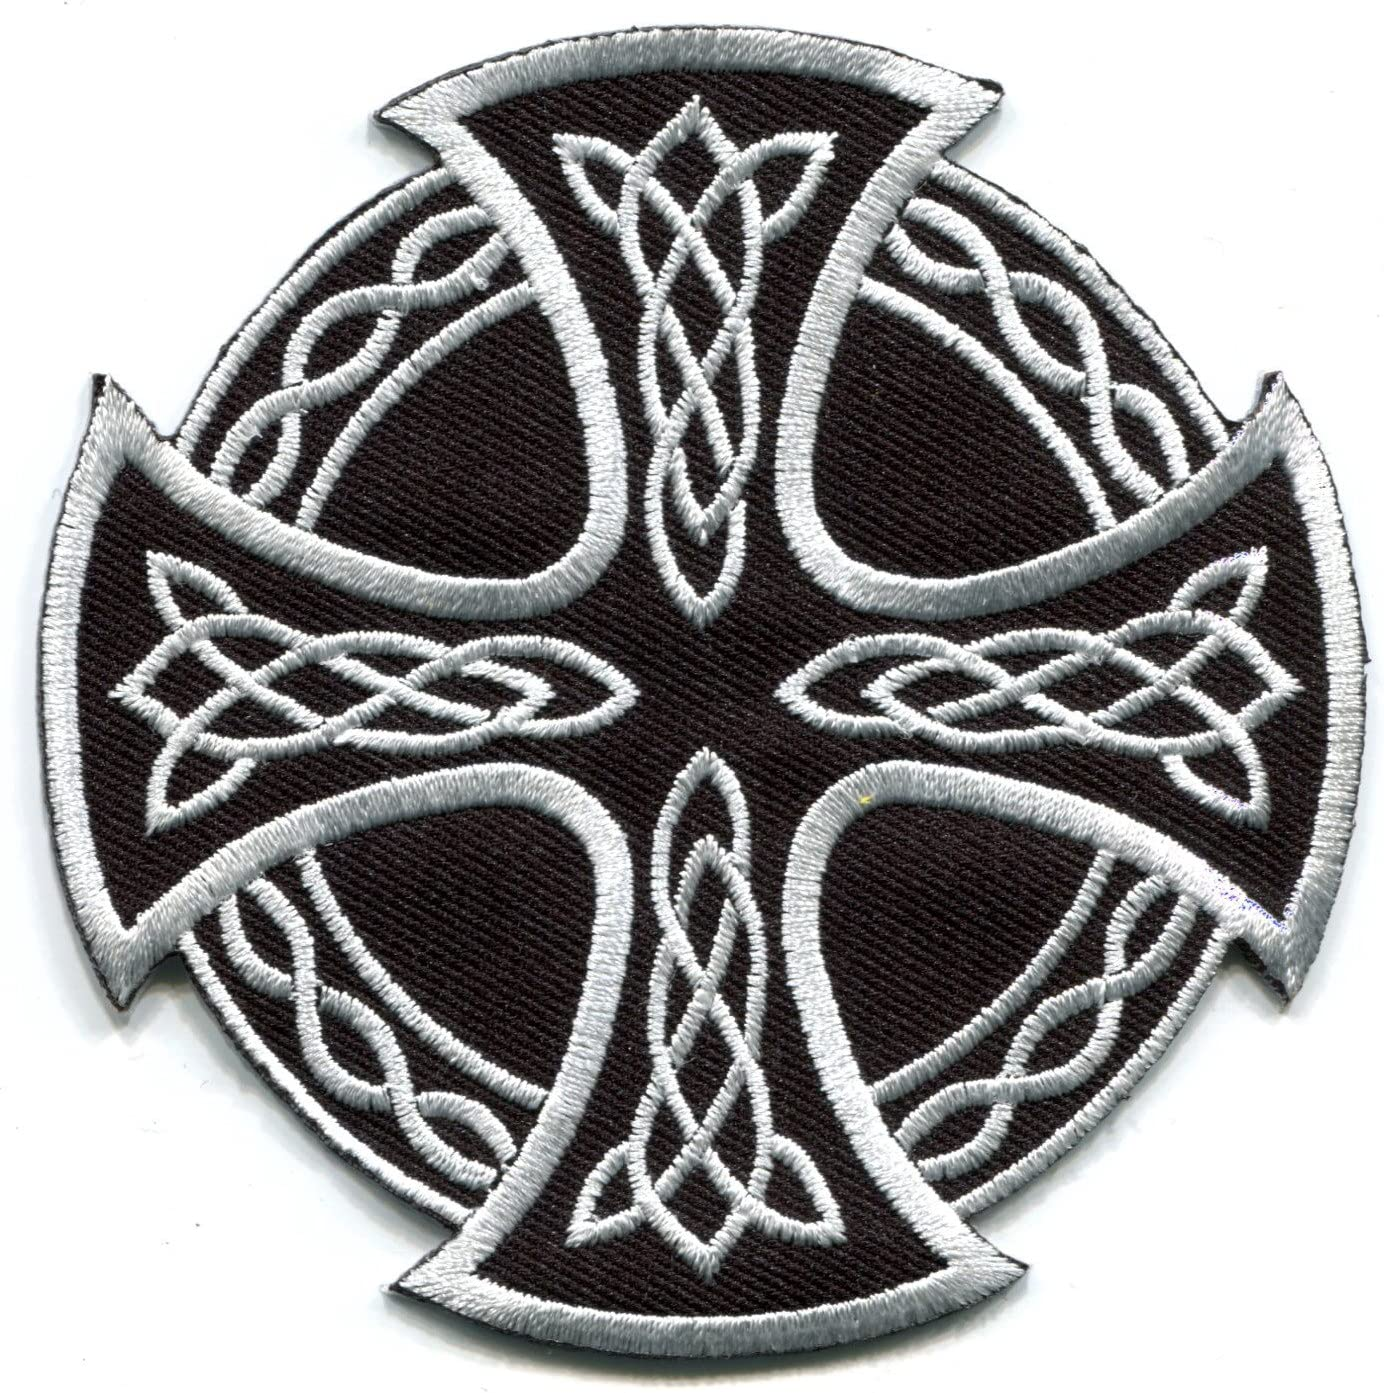 Celtic Cross Vikings Embroidered Iron On Patch Cross Sew On Badge Applique